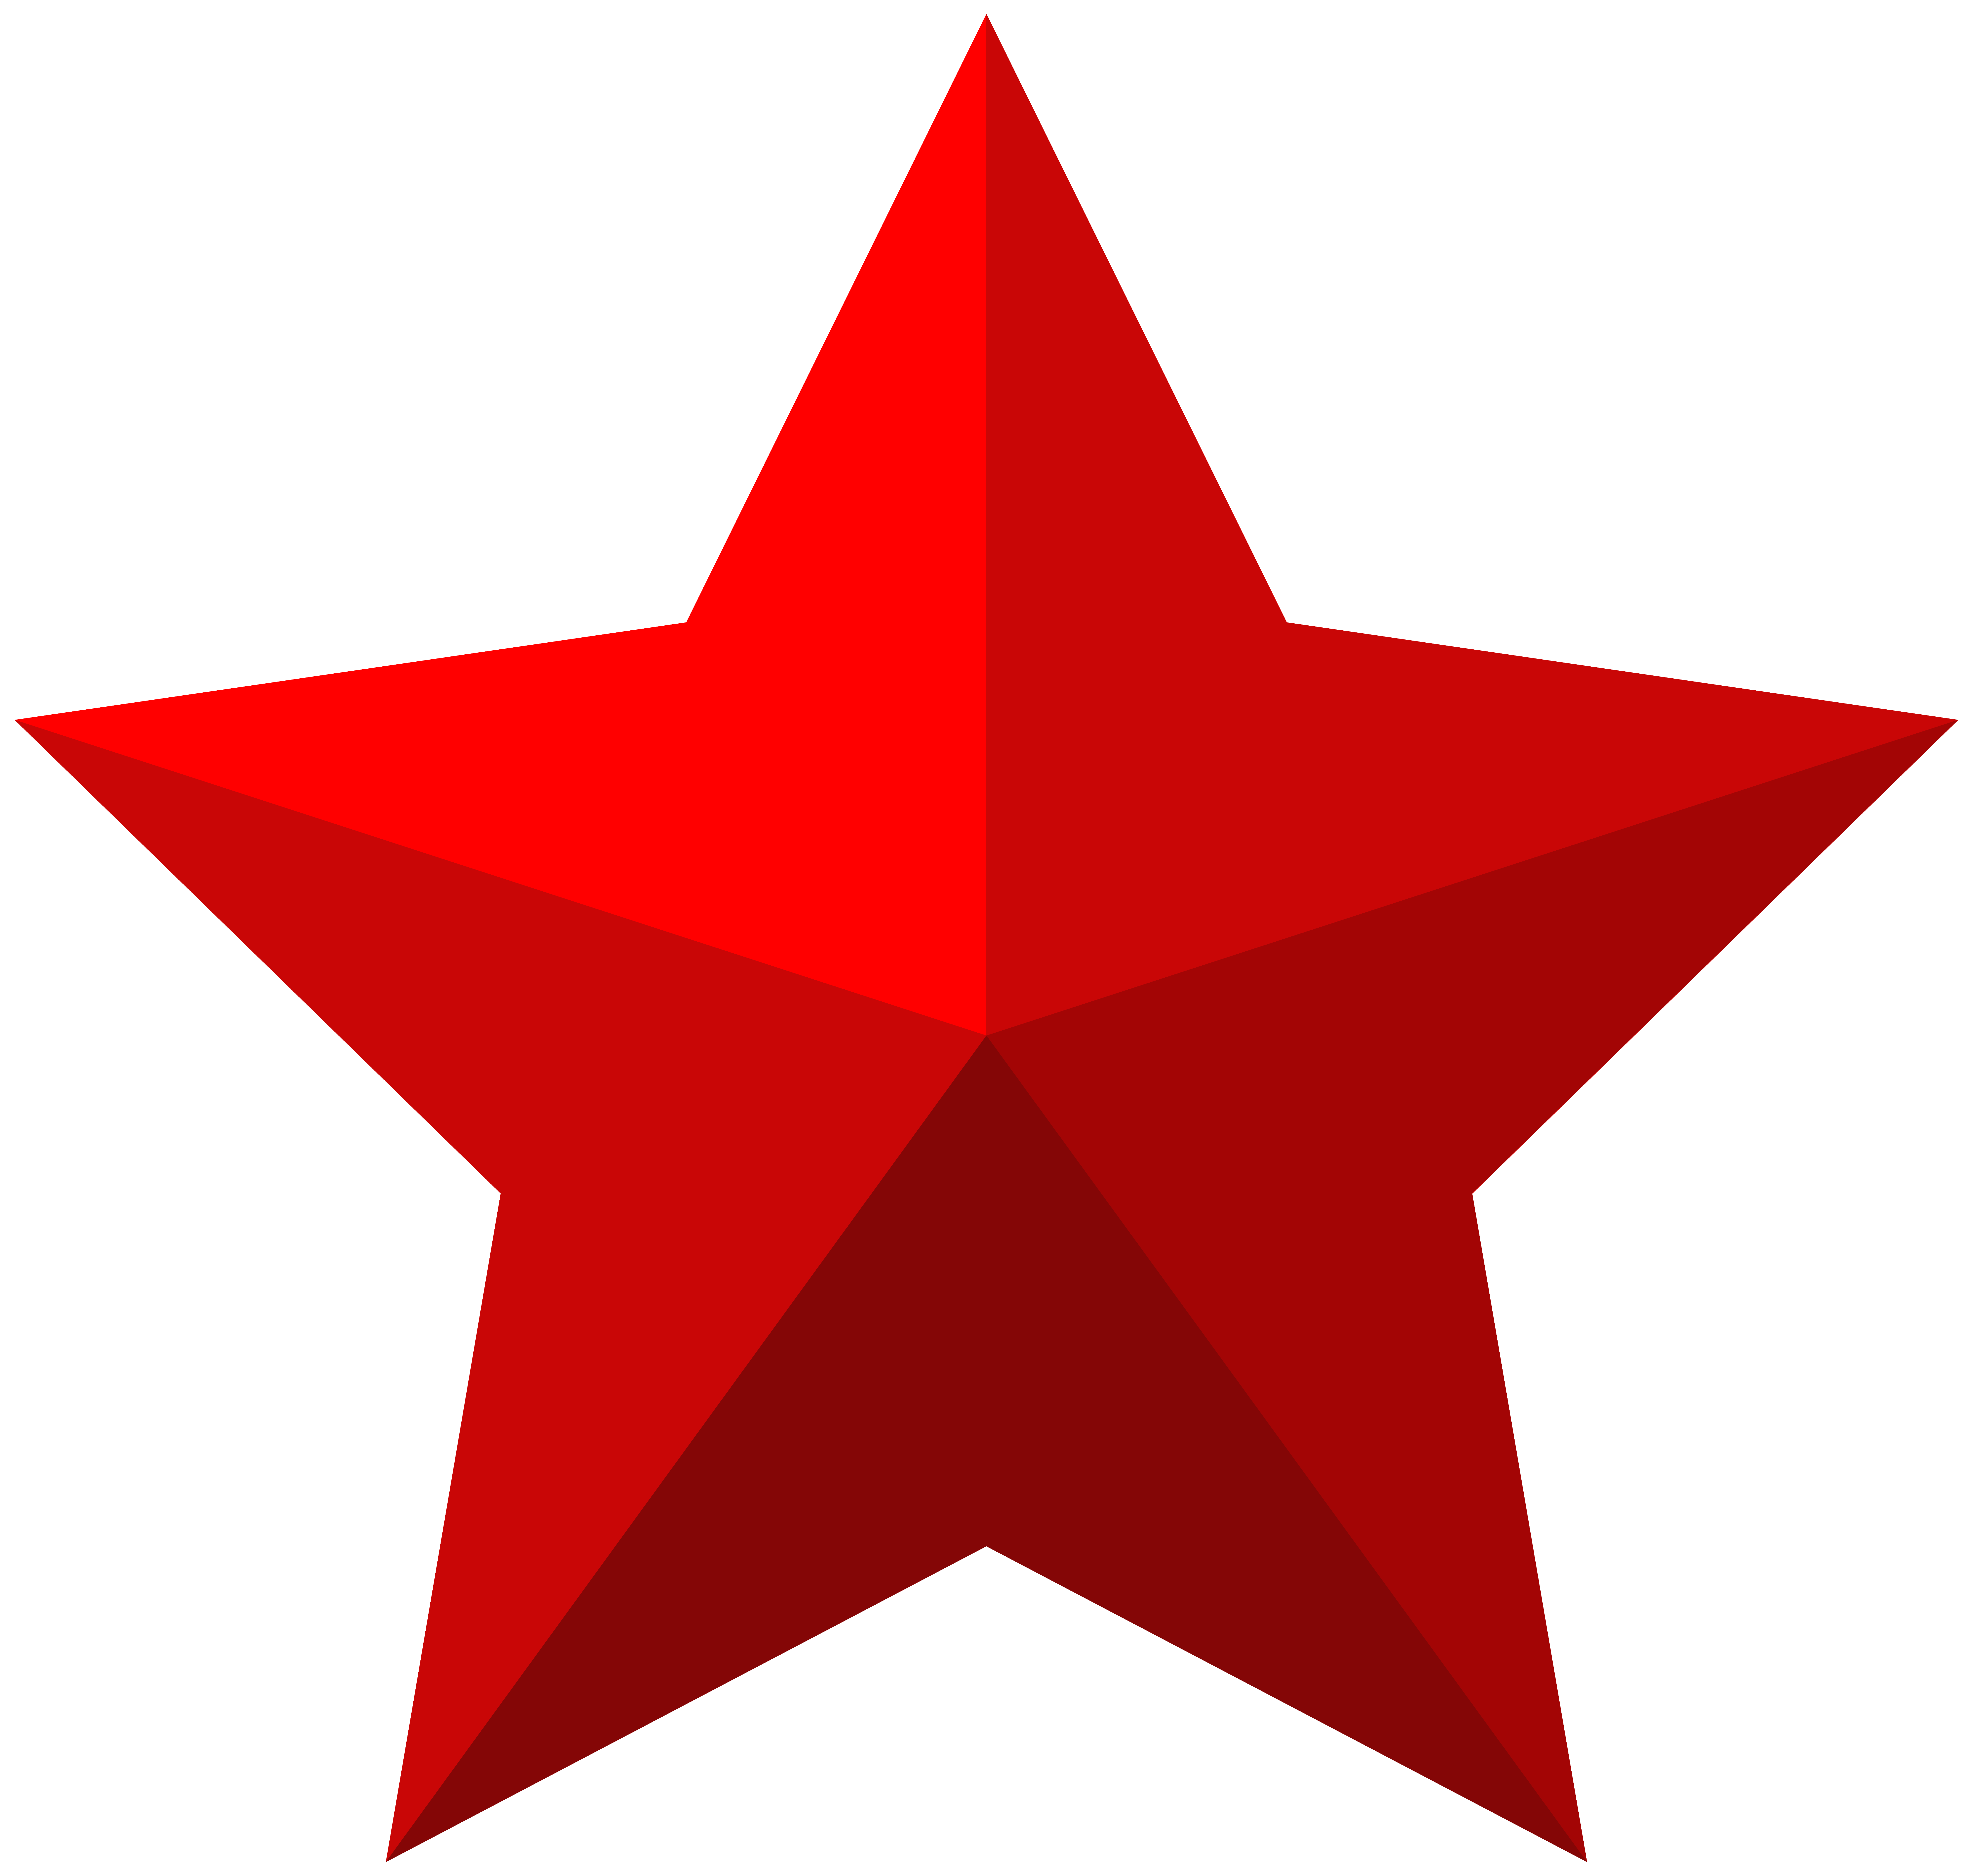 Star PNG Image File Vector, Clipart, PSD.